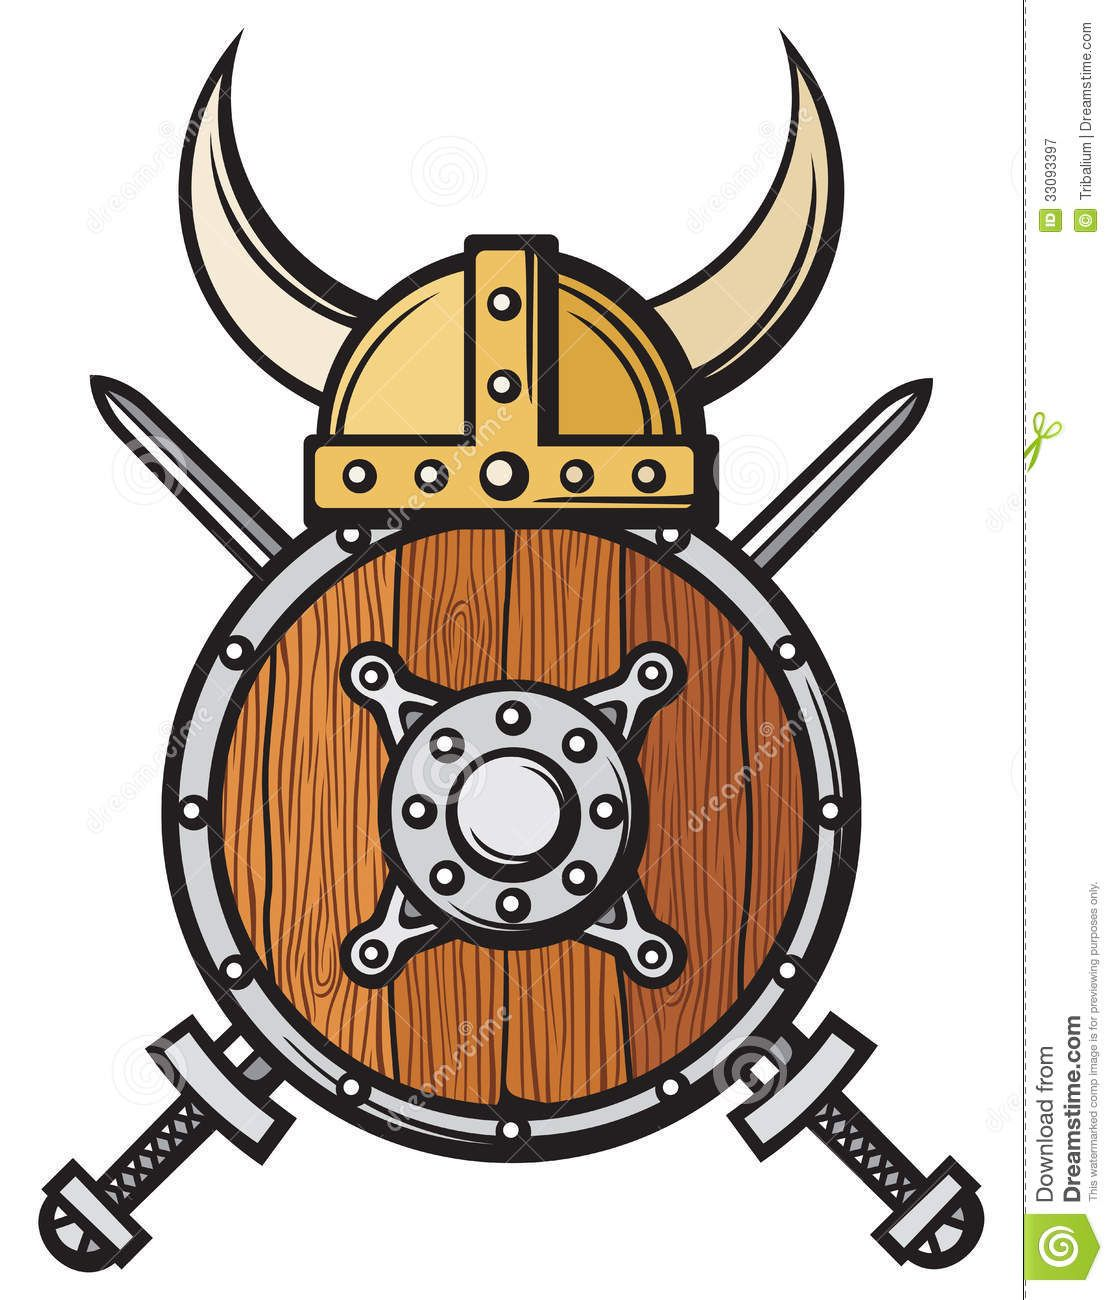 small resolution of viking helmet royalty free stock photography image 33093397